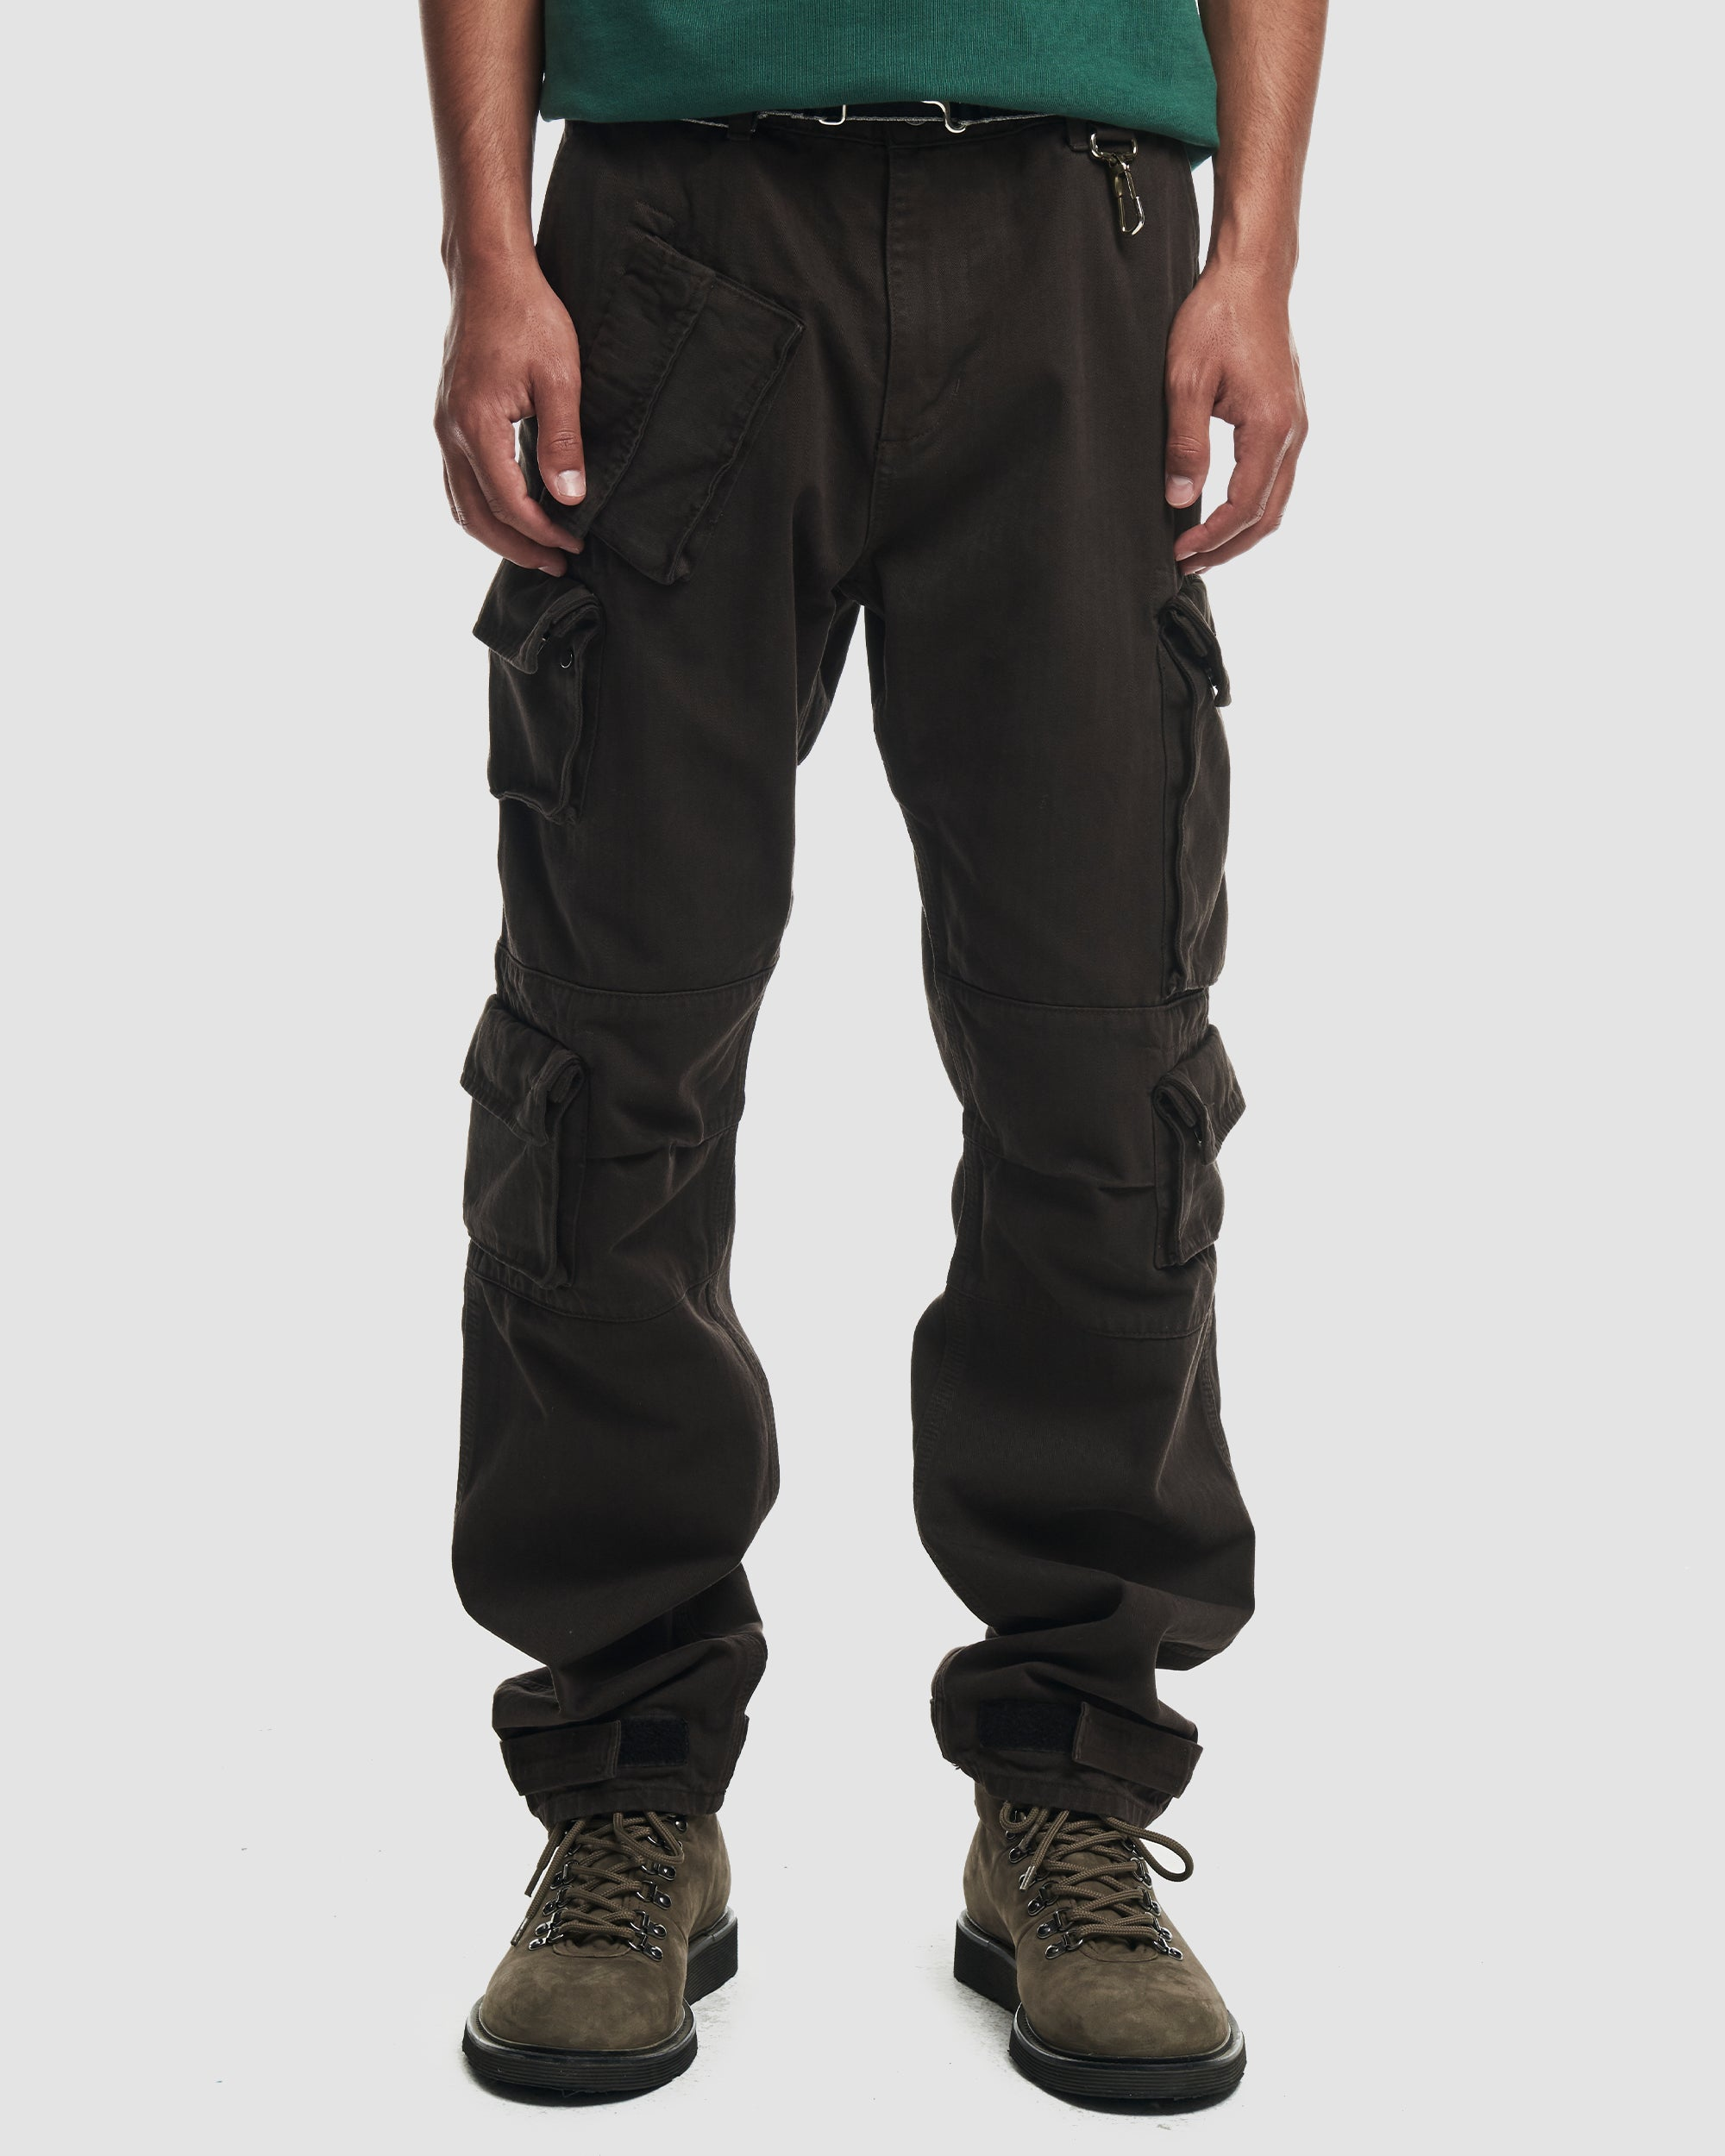 Herringbone Cotton Cargo Trouser in Brown